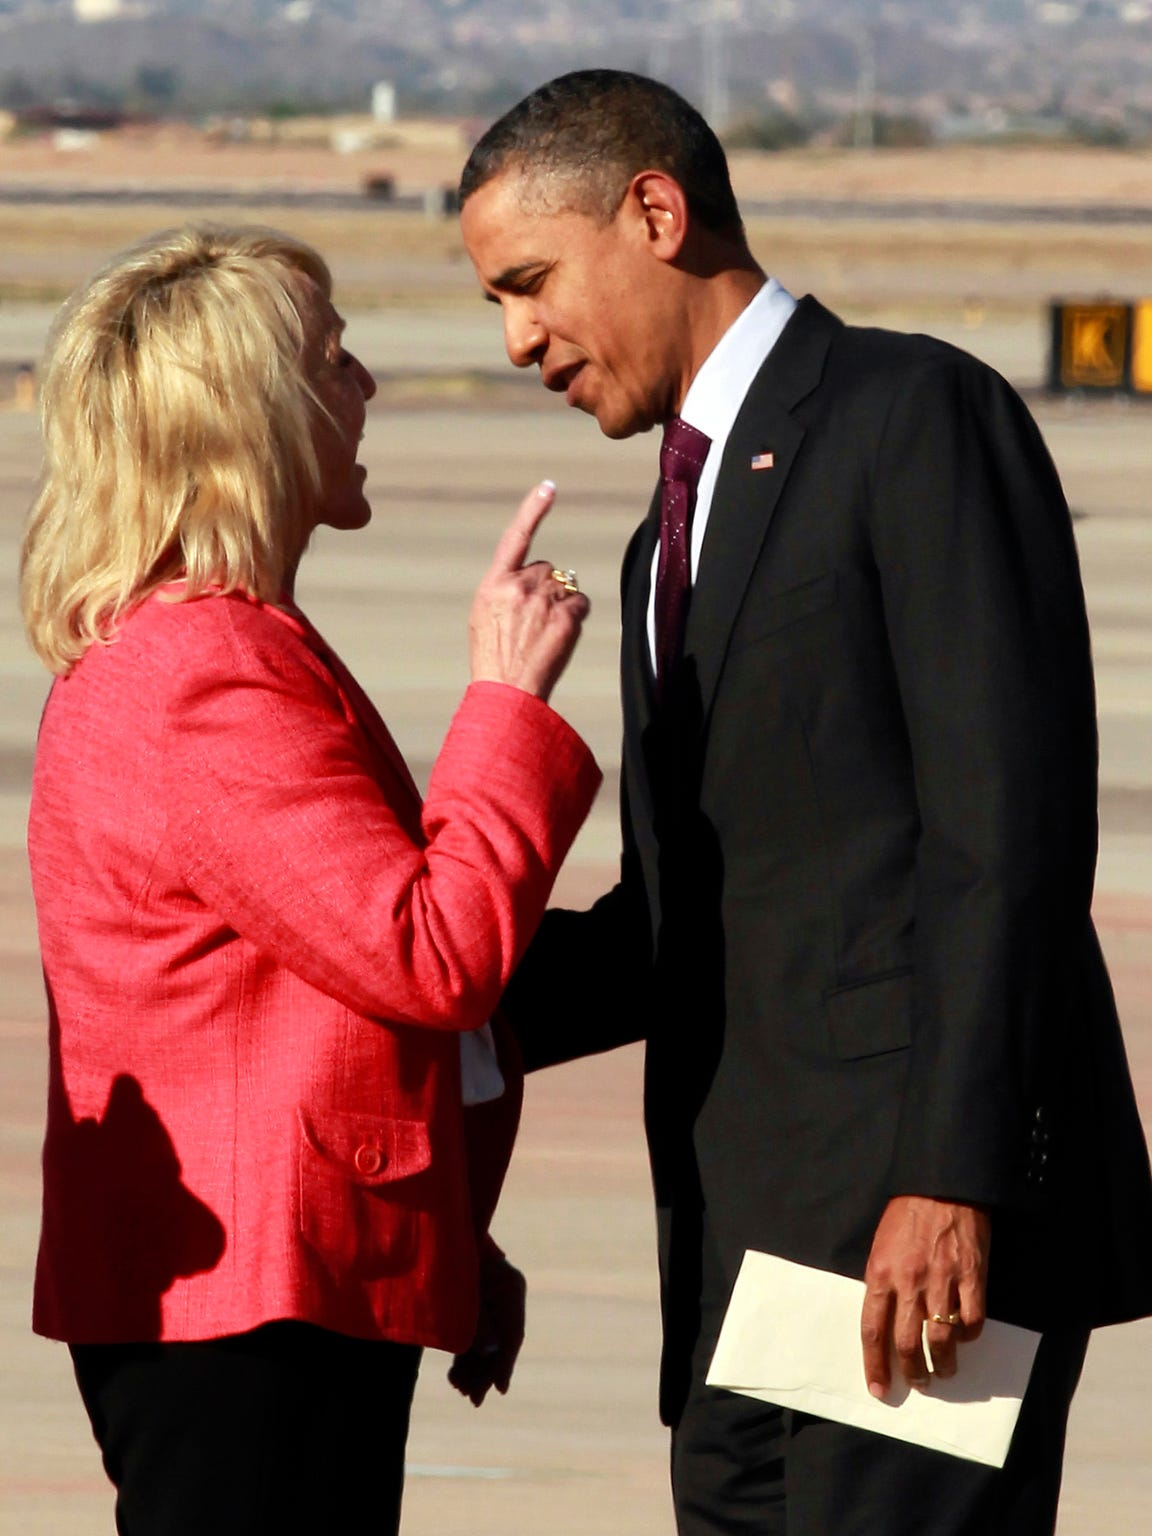 Gov. Jan Brewer's office received e-mails and letters